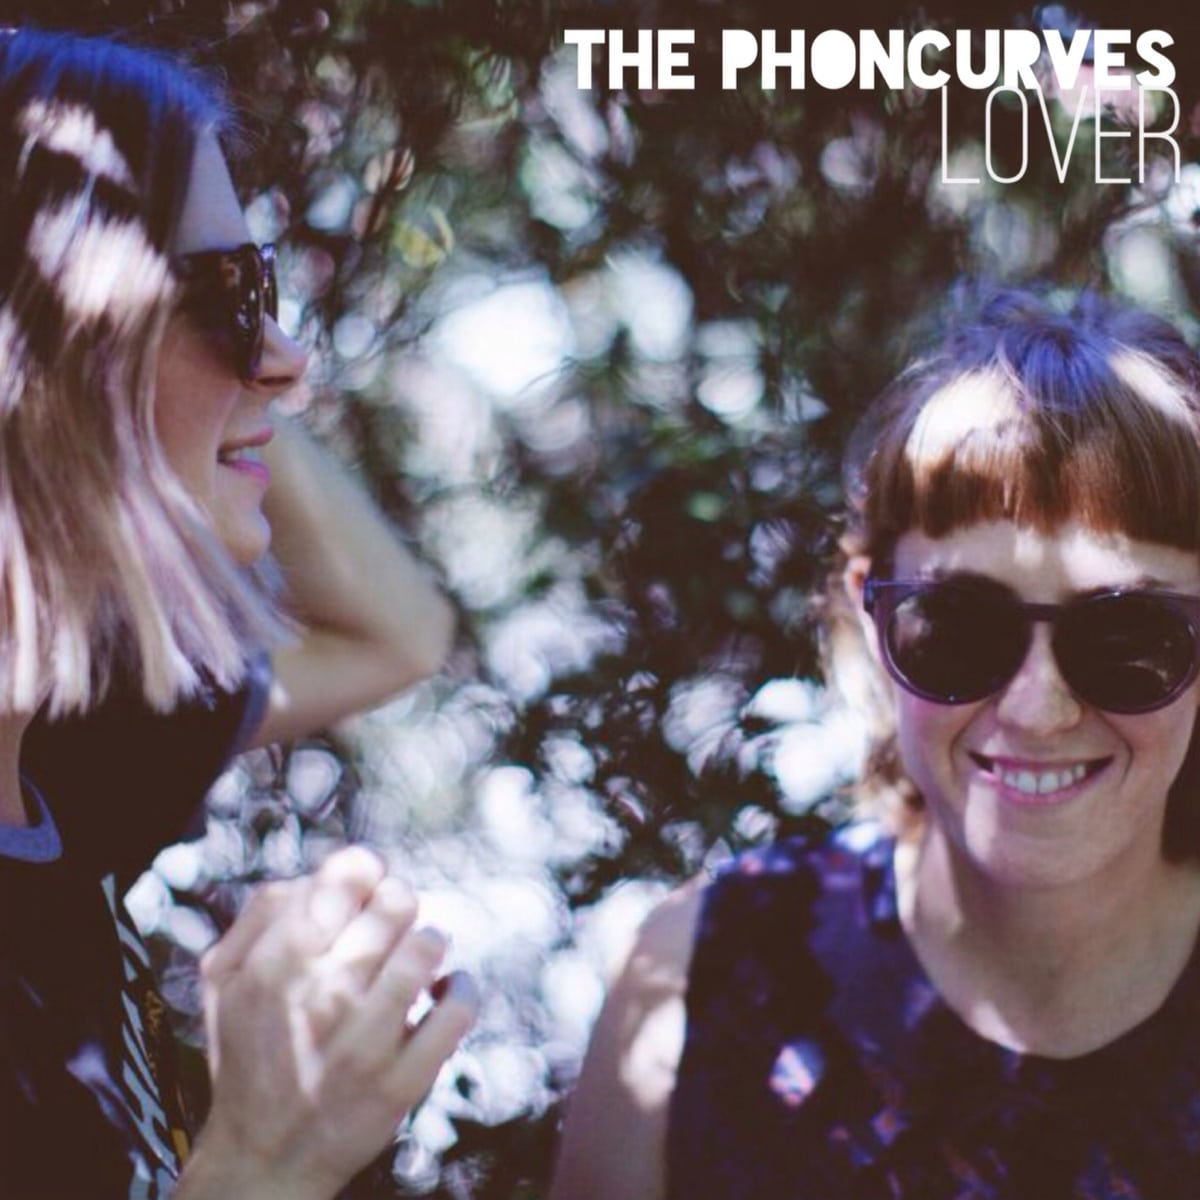 Lover by the Phoncurves - mastered at Studios 301 by Andrew Edgson